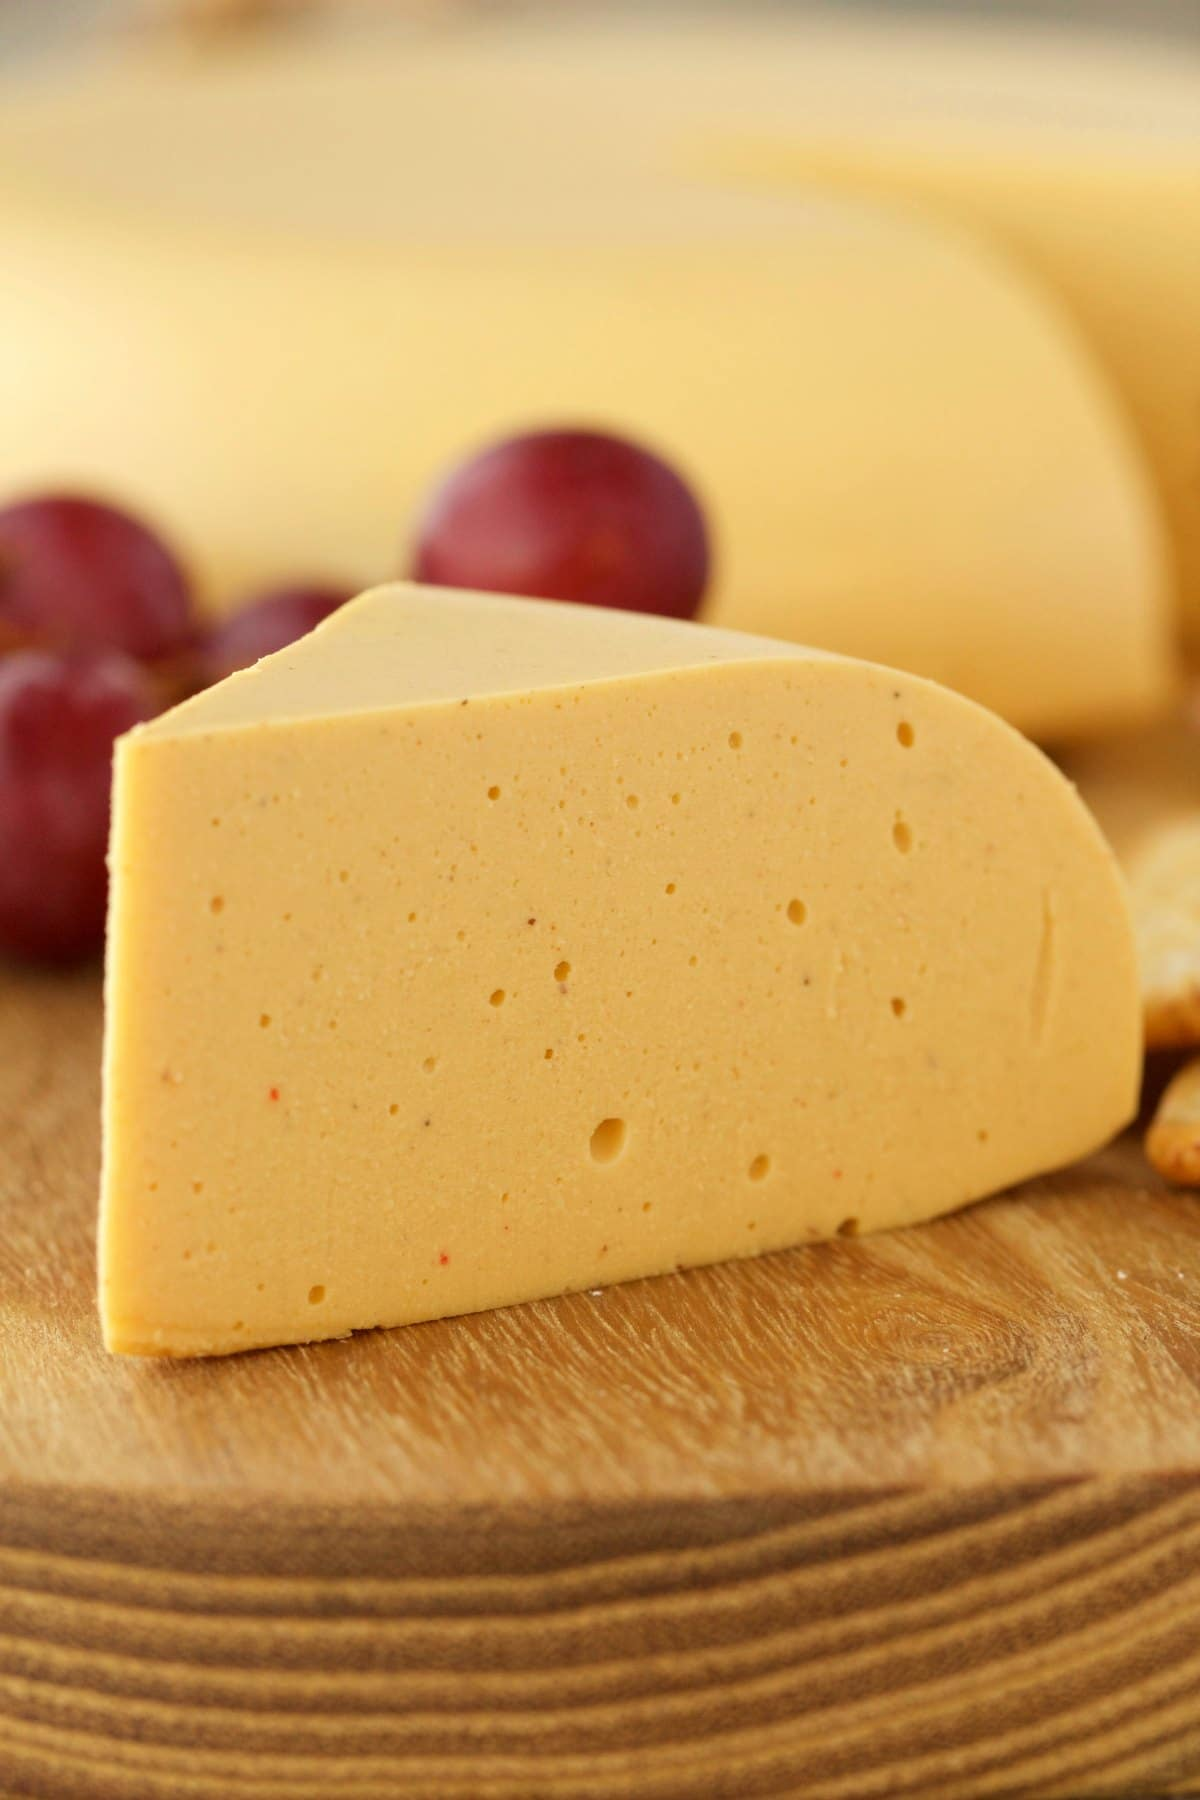 Large wedge of vegan cheese on a cheese board with grapes and crackers.